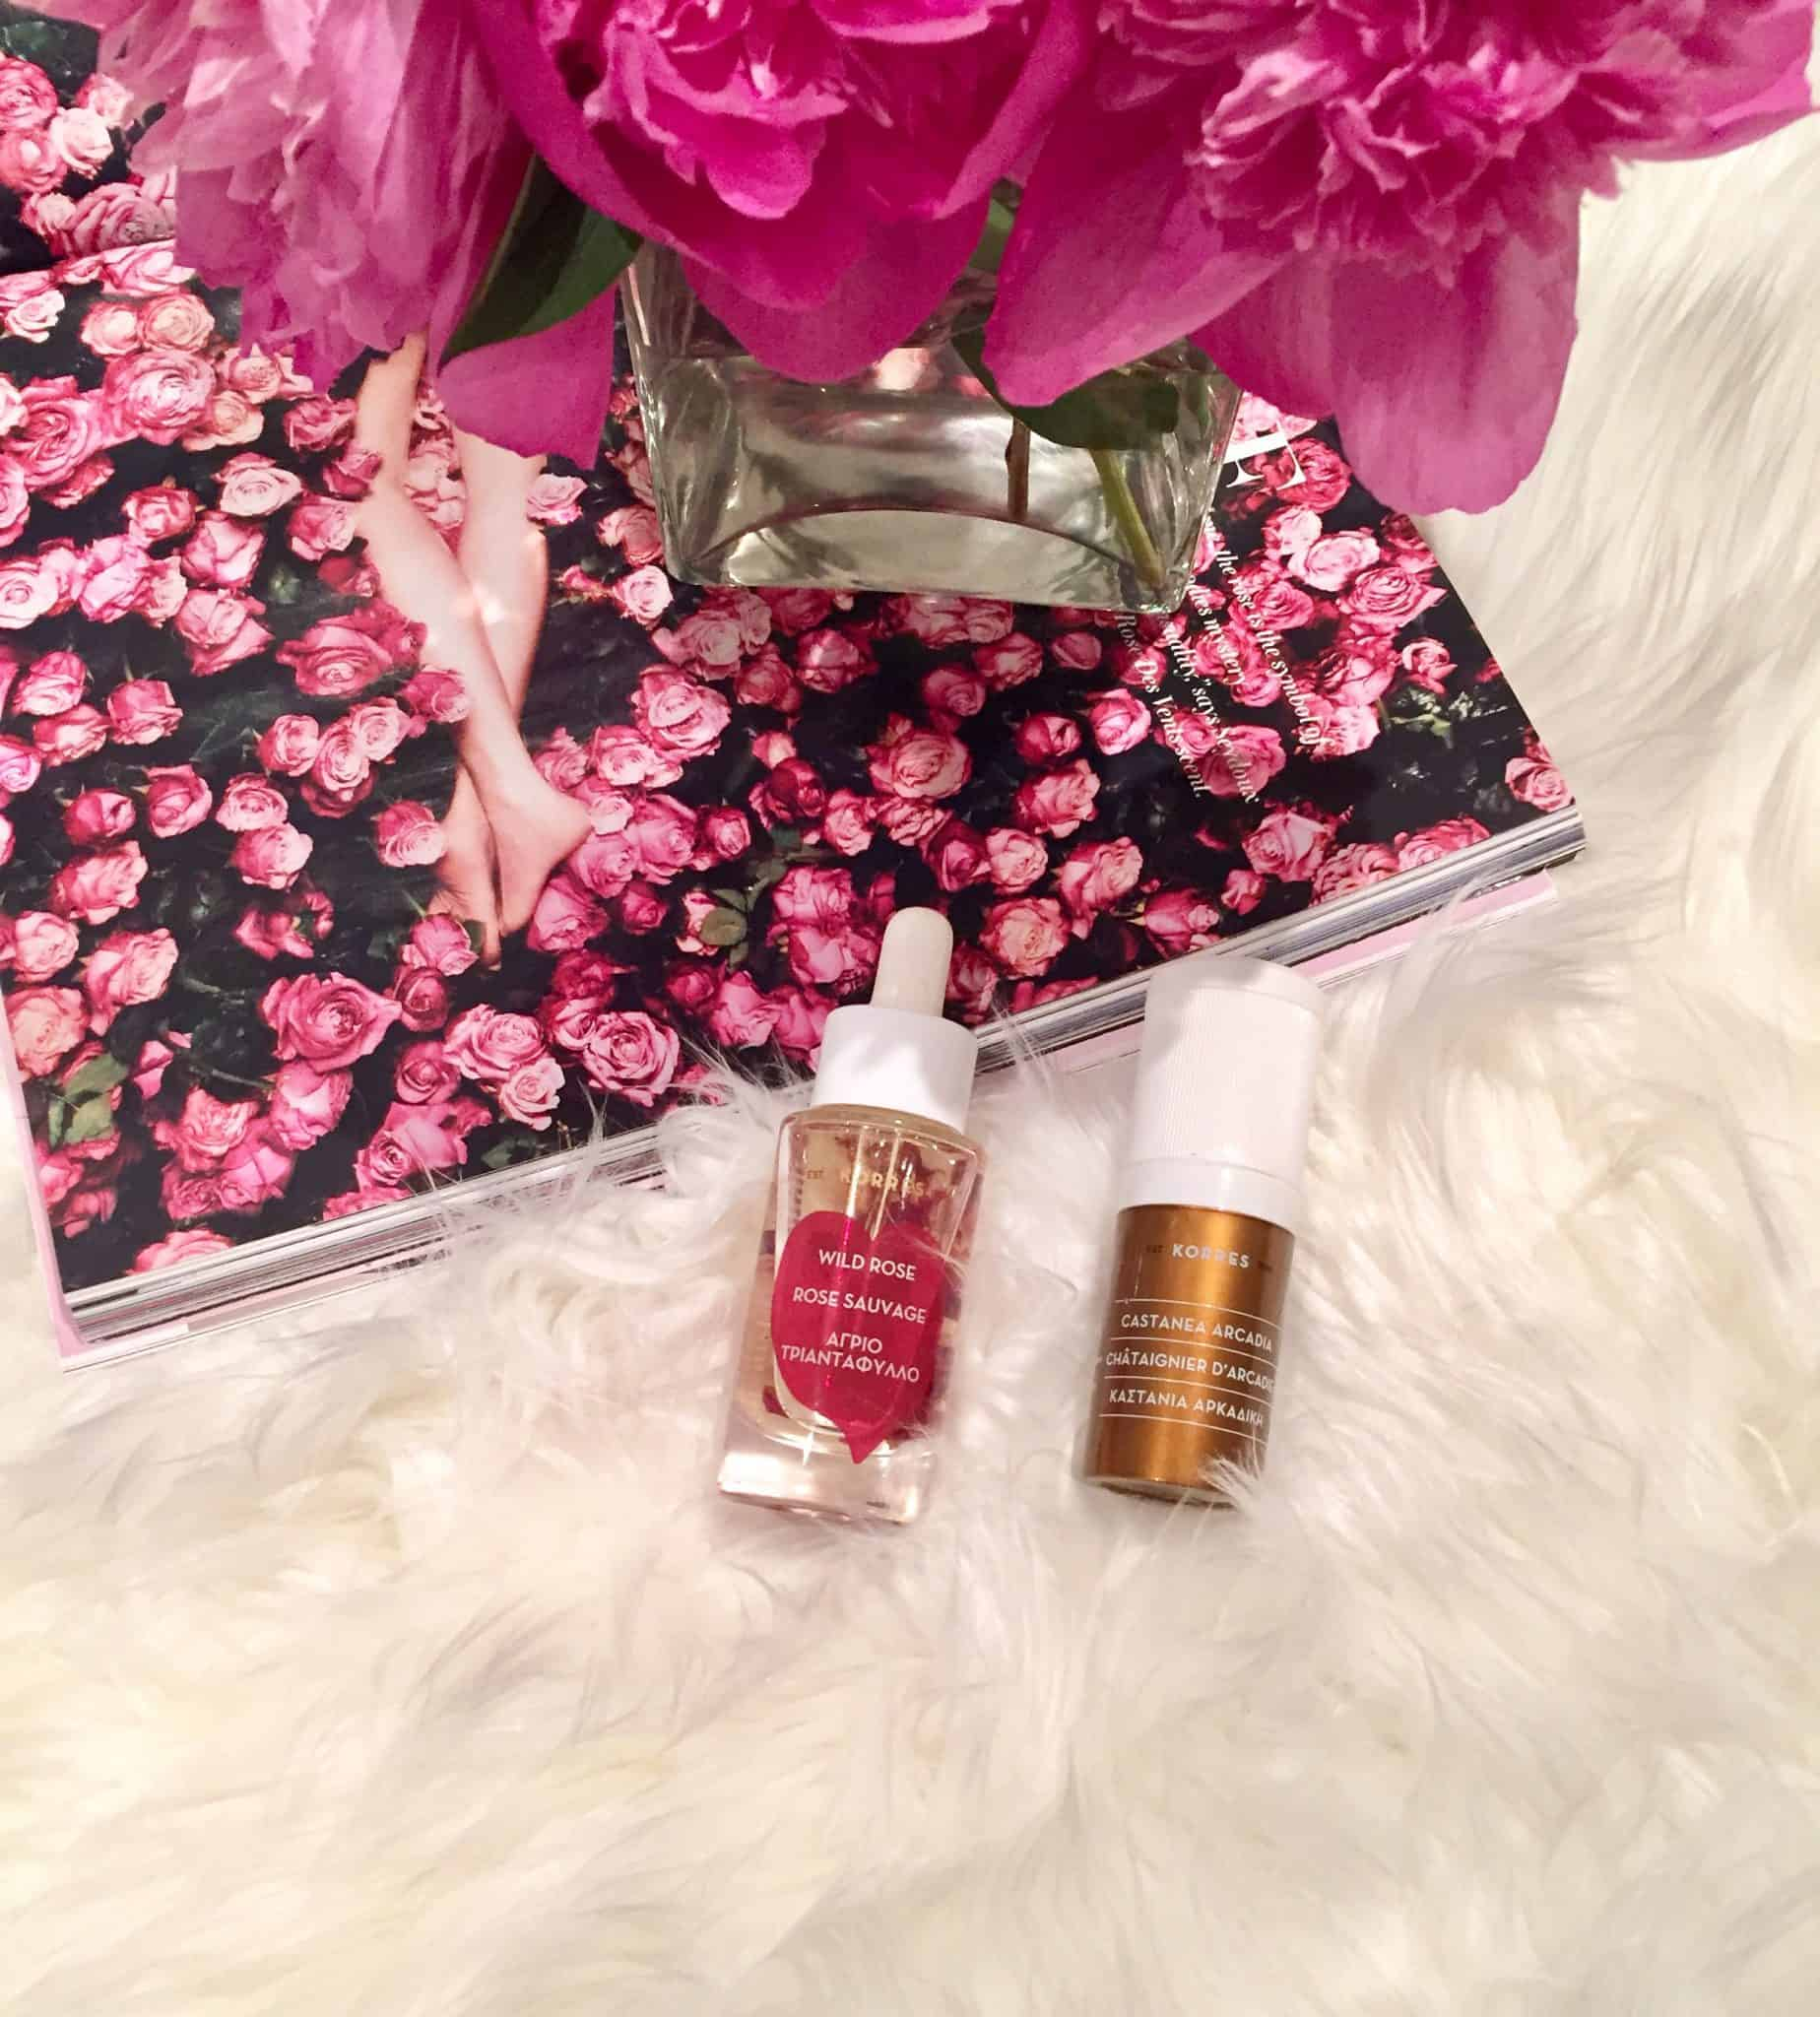 Beautify Your Skin with Korres Wild Rose Oil and Castanea Arcadia Wrinkle Rewind Eye Cream